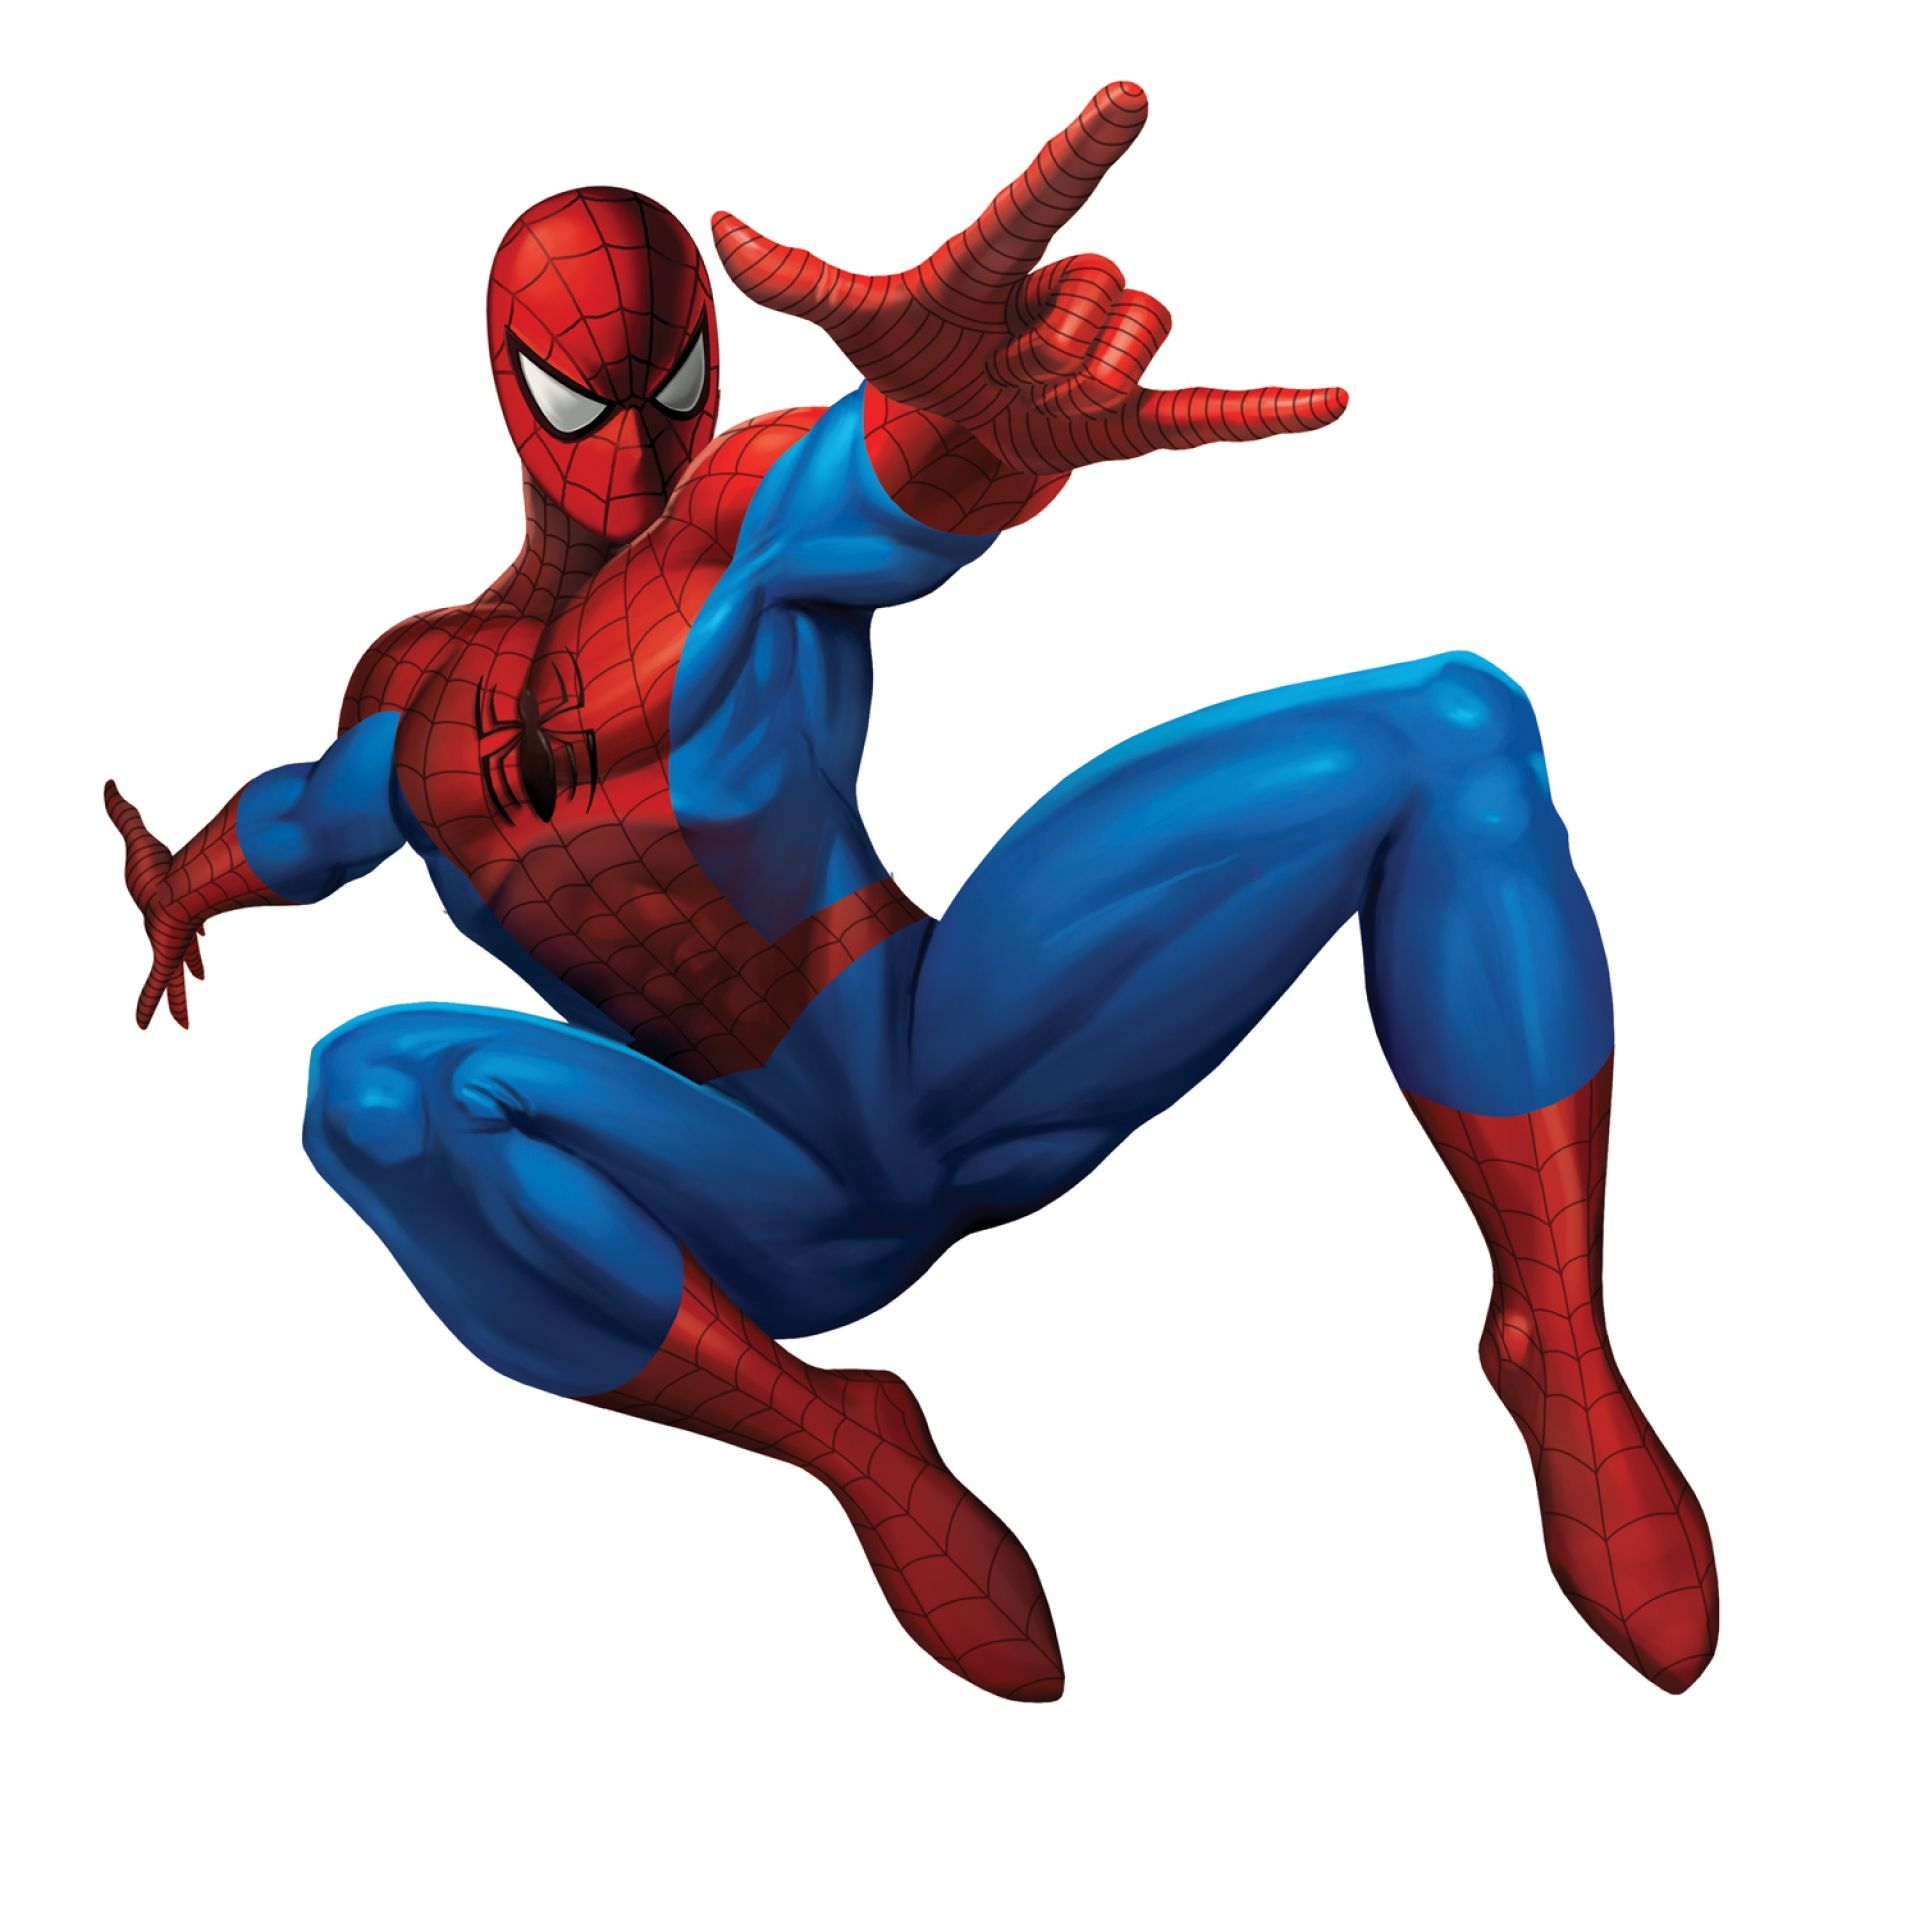 Spiderman Cartoon Images 20745 Hd Wallpapers Widescreen In Movies Telusers